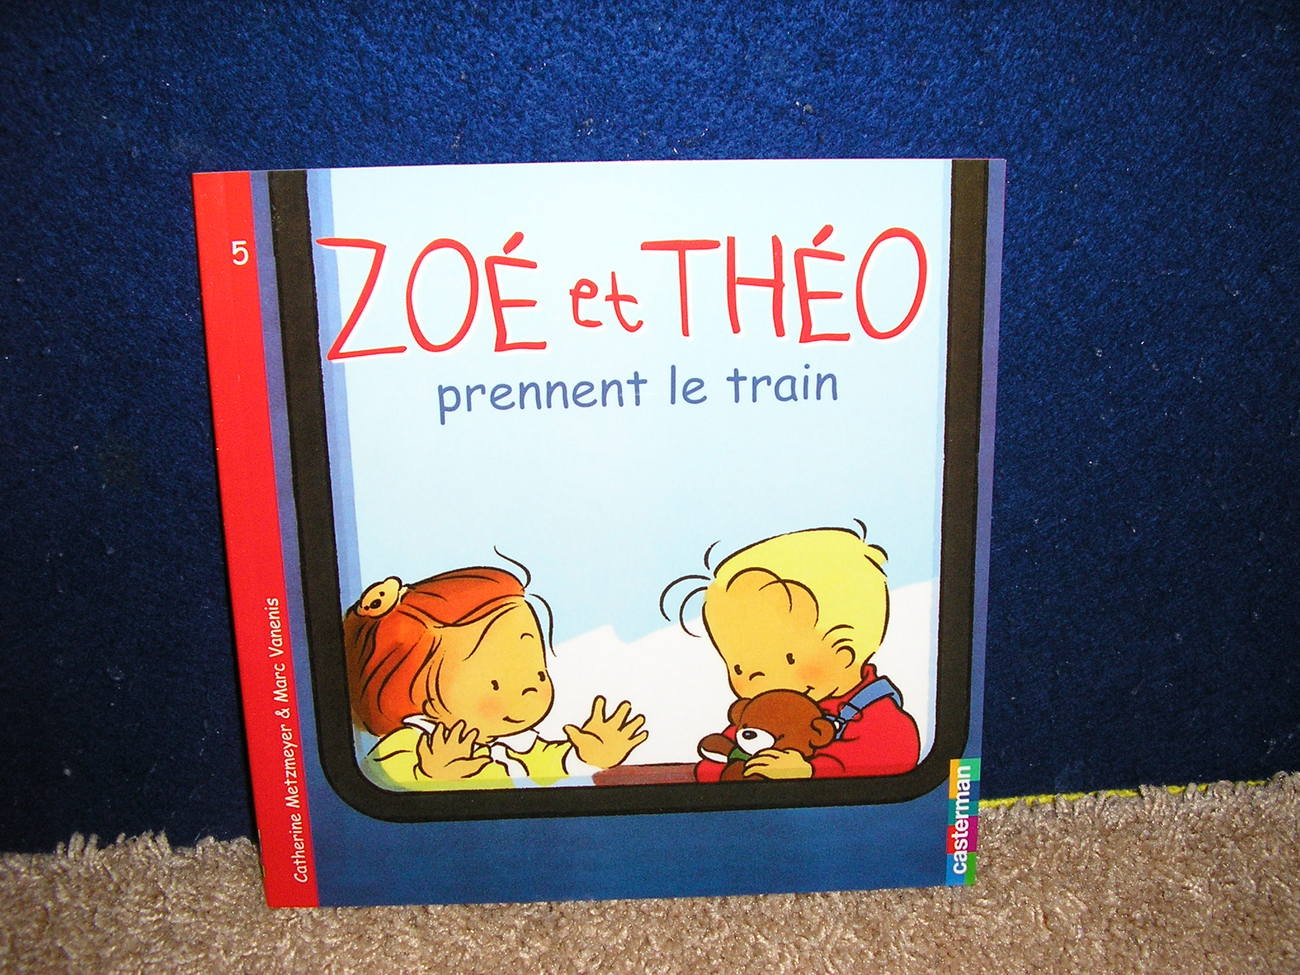 Zoe et Theo prennent le train by Catherine Metzmeyer